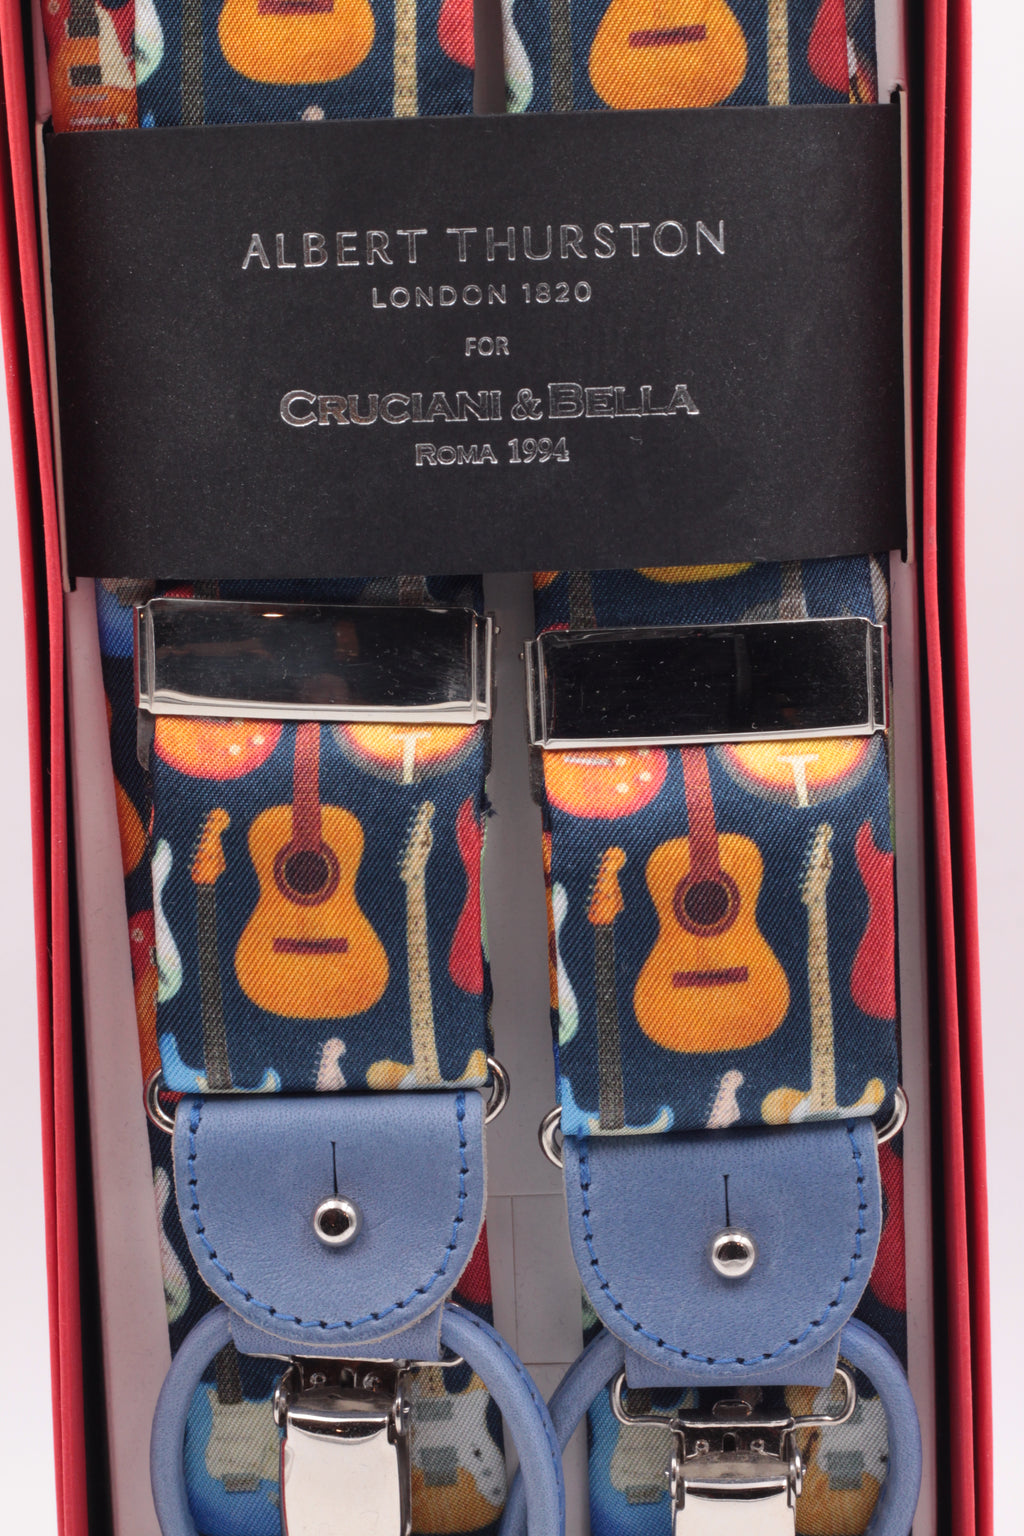 Albert Thurston for Cruciani & Bella Made in England 2 in 1 Adjustable Sizing 40 mm braces Fancy, guitars Y-Shaped Nickel Fittings Size: XL